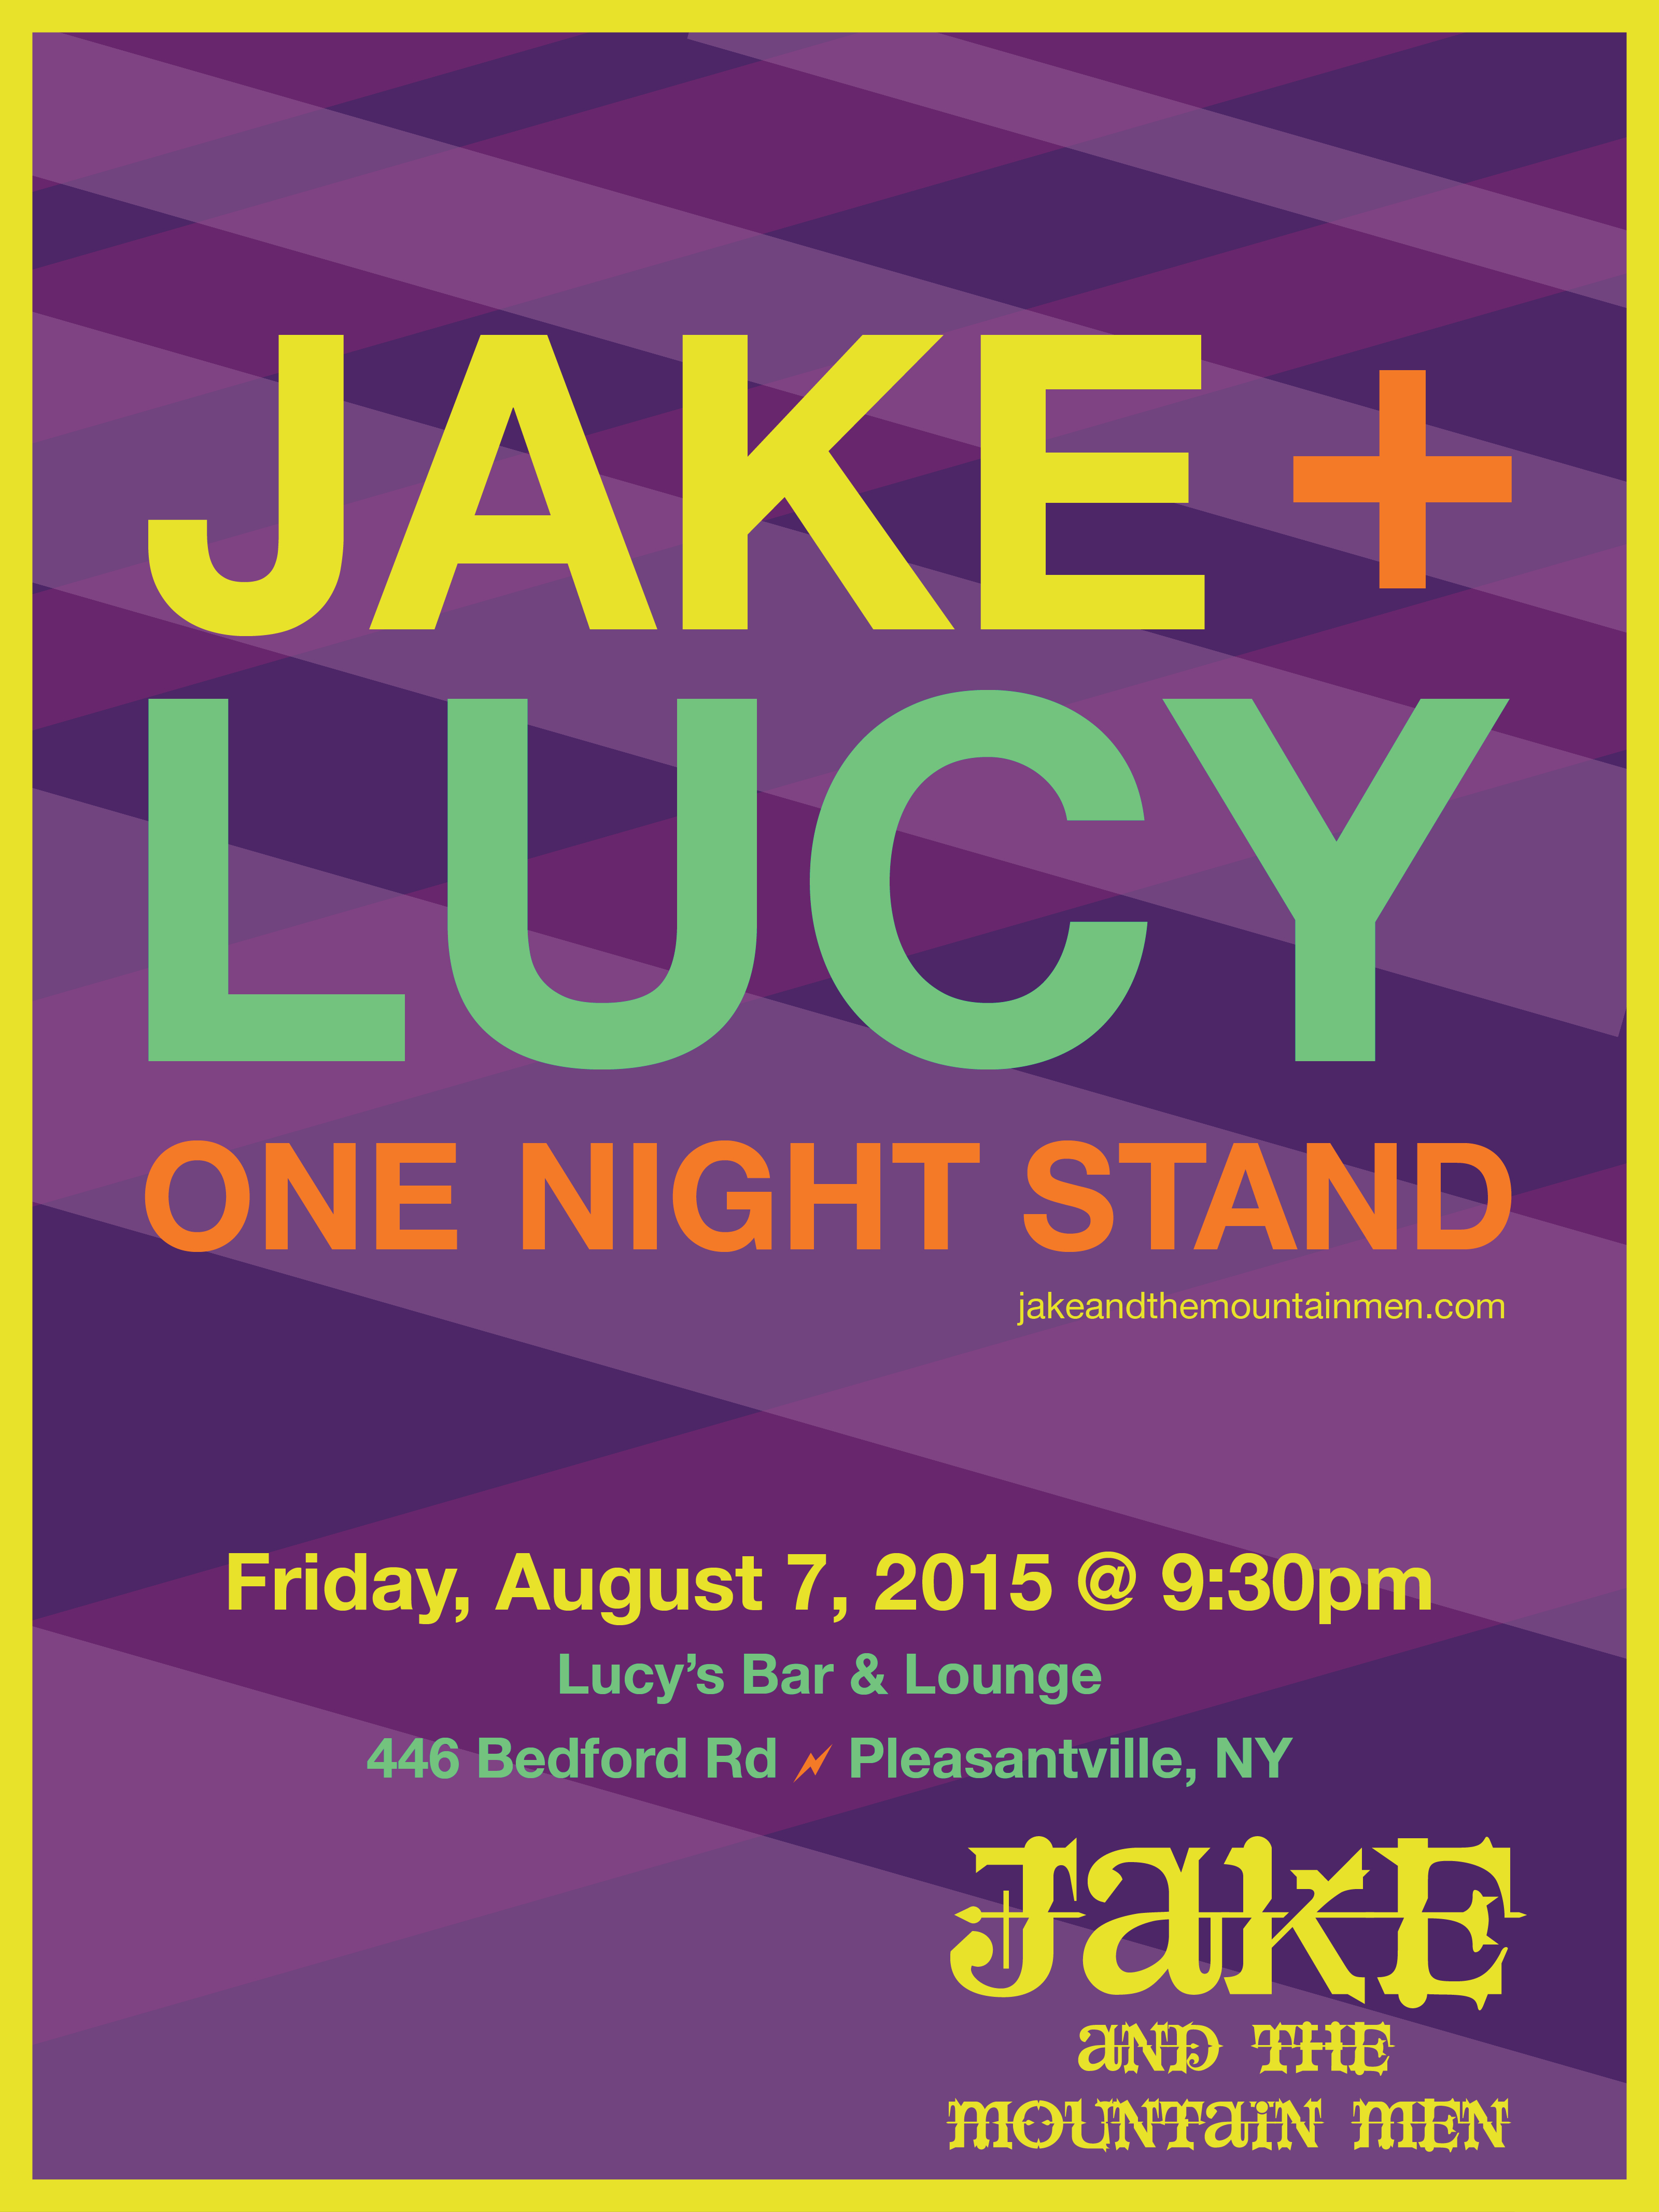 Jake + Lucy One Night Stand